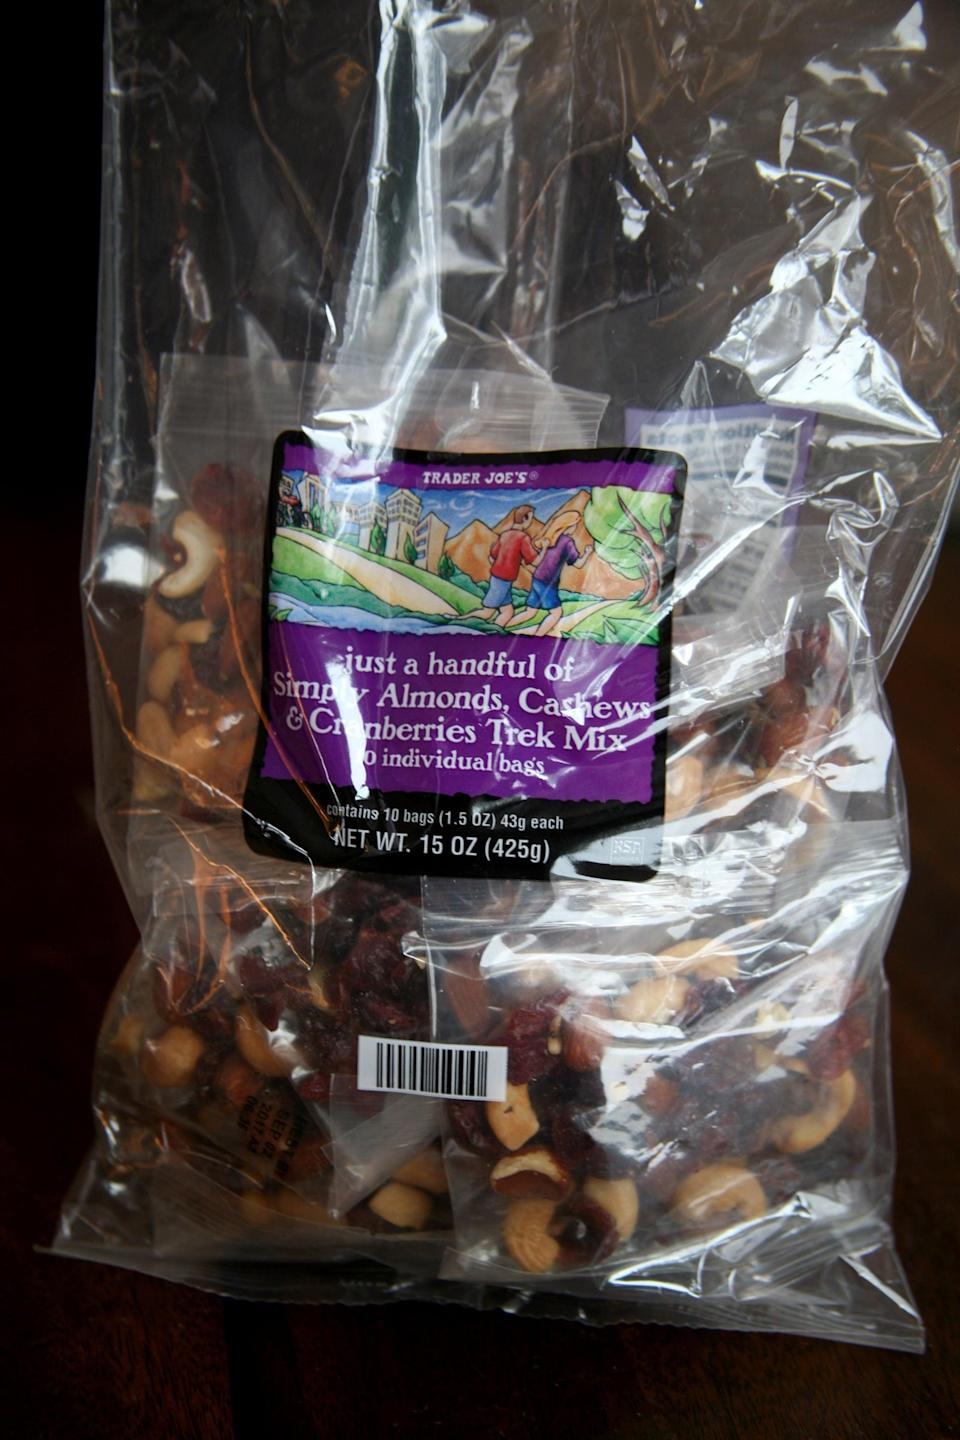 <p>For a quick protein-packed snack, Trader Joe's makes a few varieties of premade trail mix packs, so you can grab these instead of making them yourself. </p>